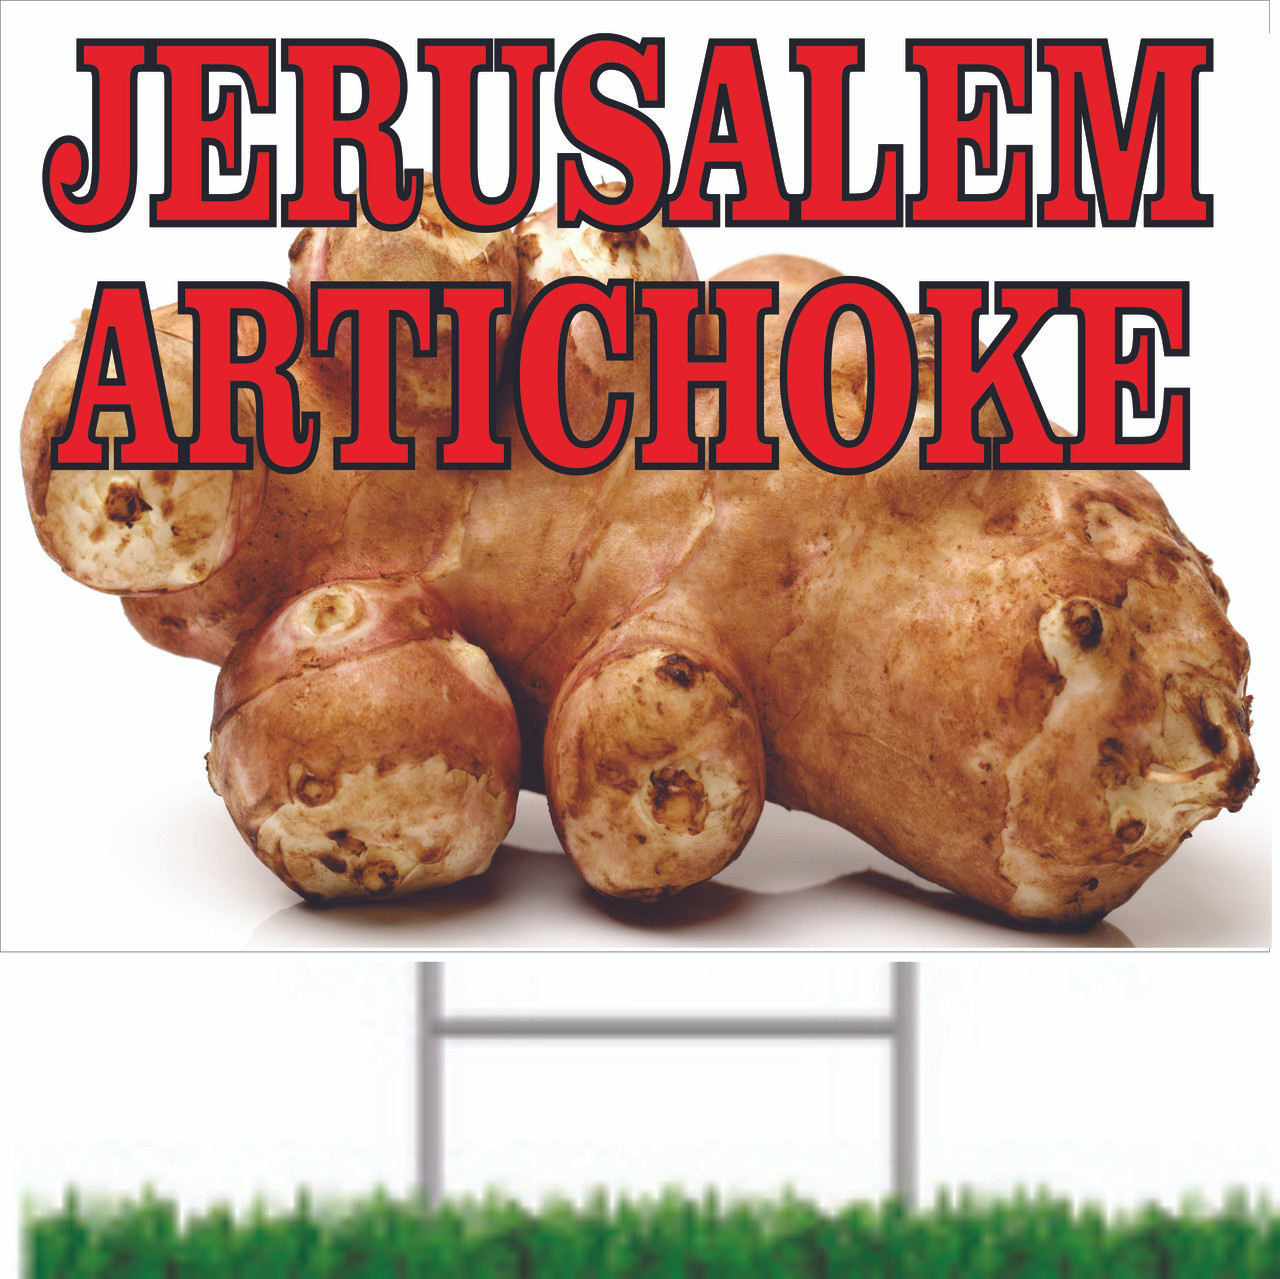 Jerusalme Artichokes Road Signs Informs Customers about your market.